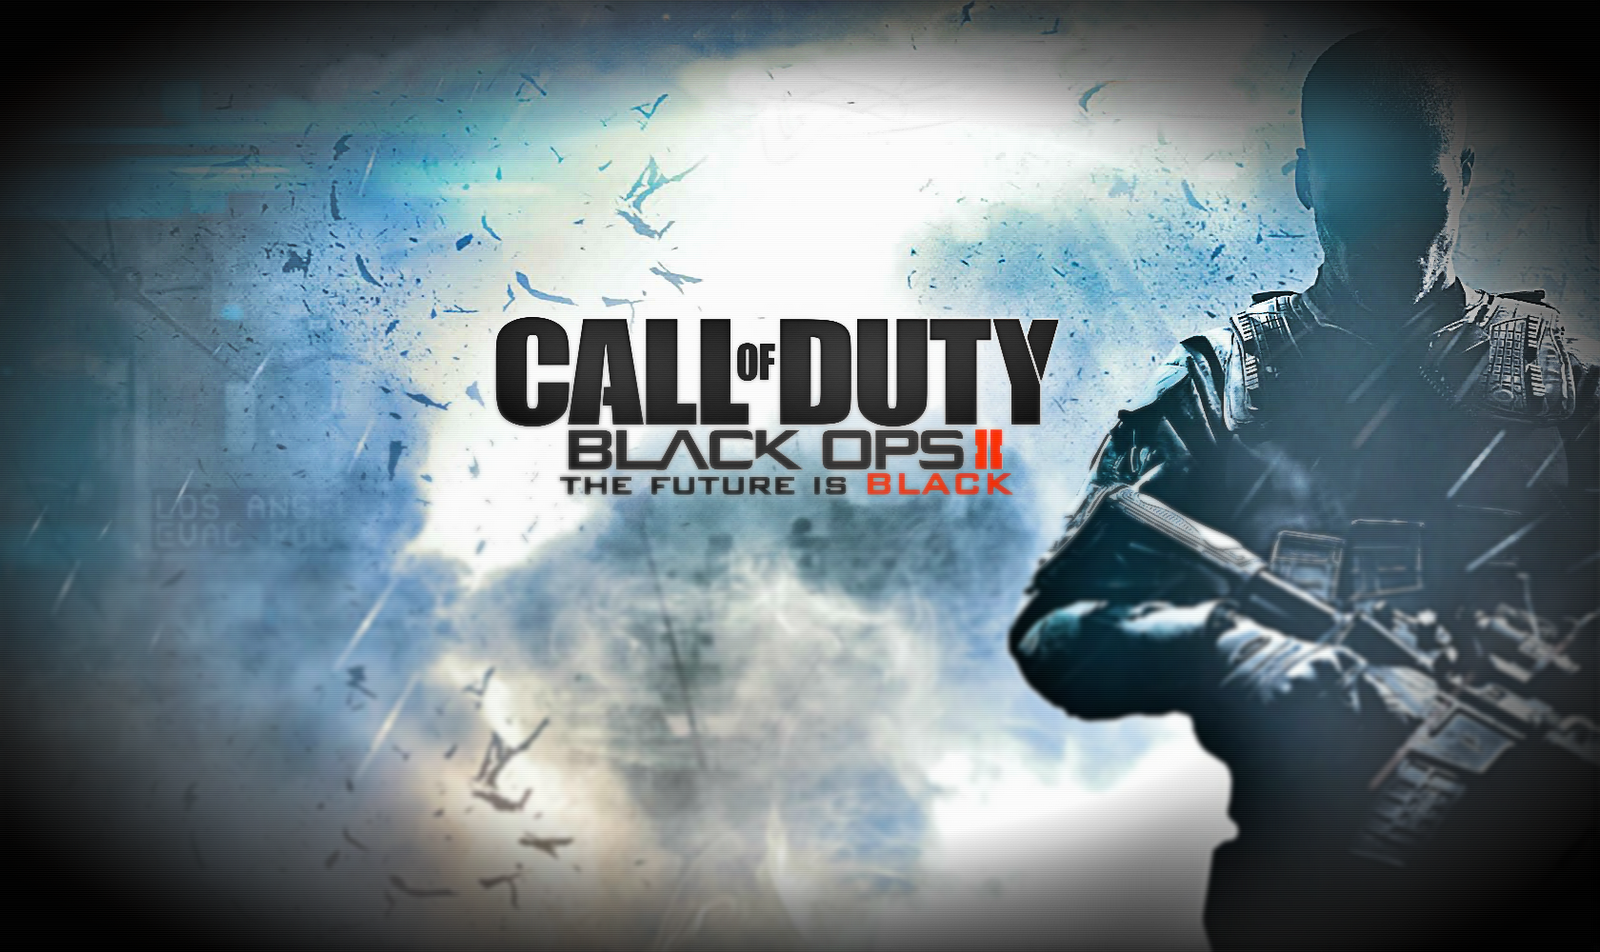 http://4.bp.blogspot.com/-iOXXH9HUG0g/UKn7Q9dWEII/AAAAAAAAAP4/z0bm_WA8pxo/s1600/call+of+duty+black+ops+2+hd+wallpaper+(3).png